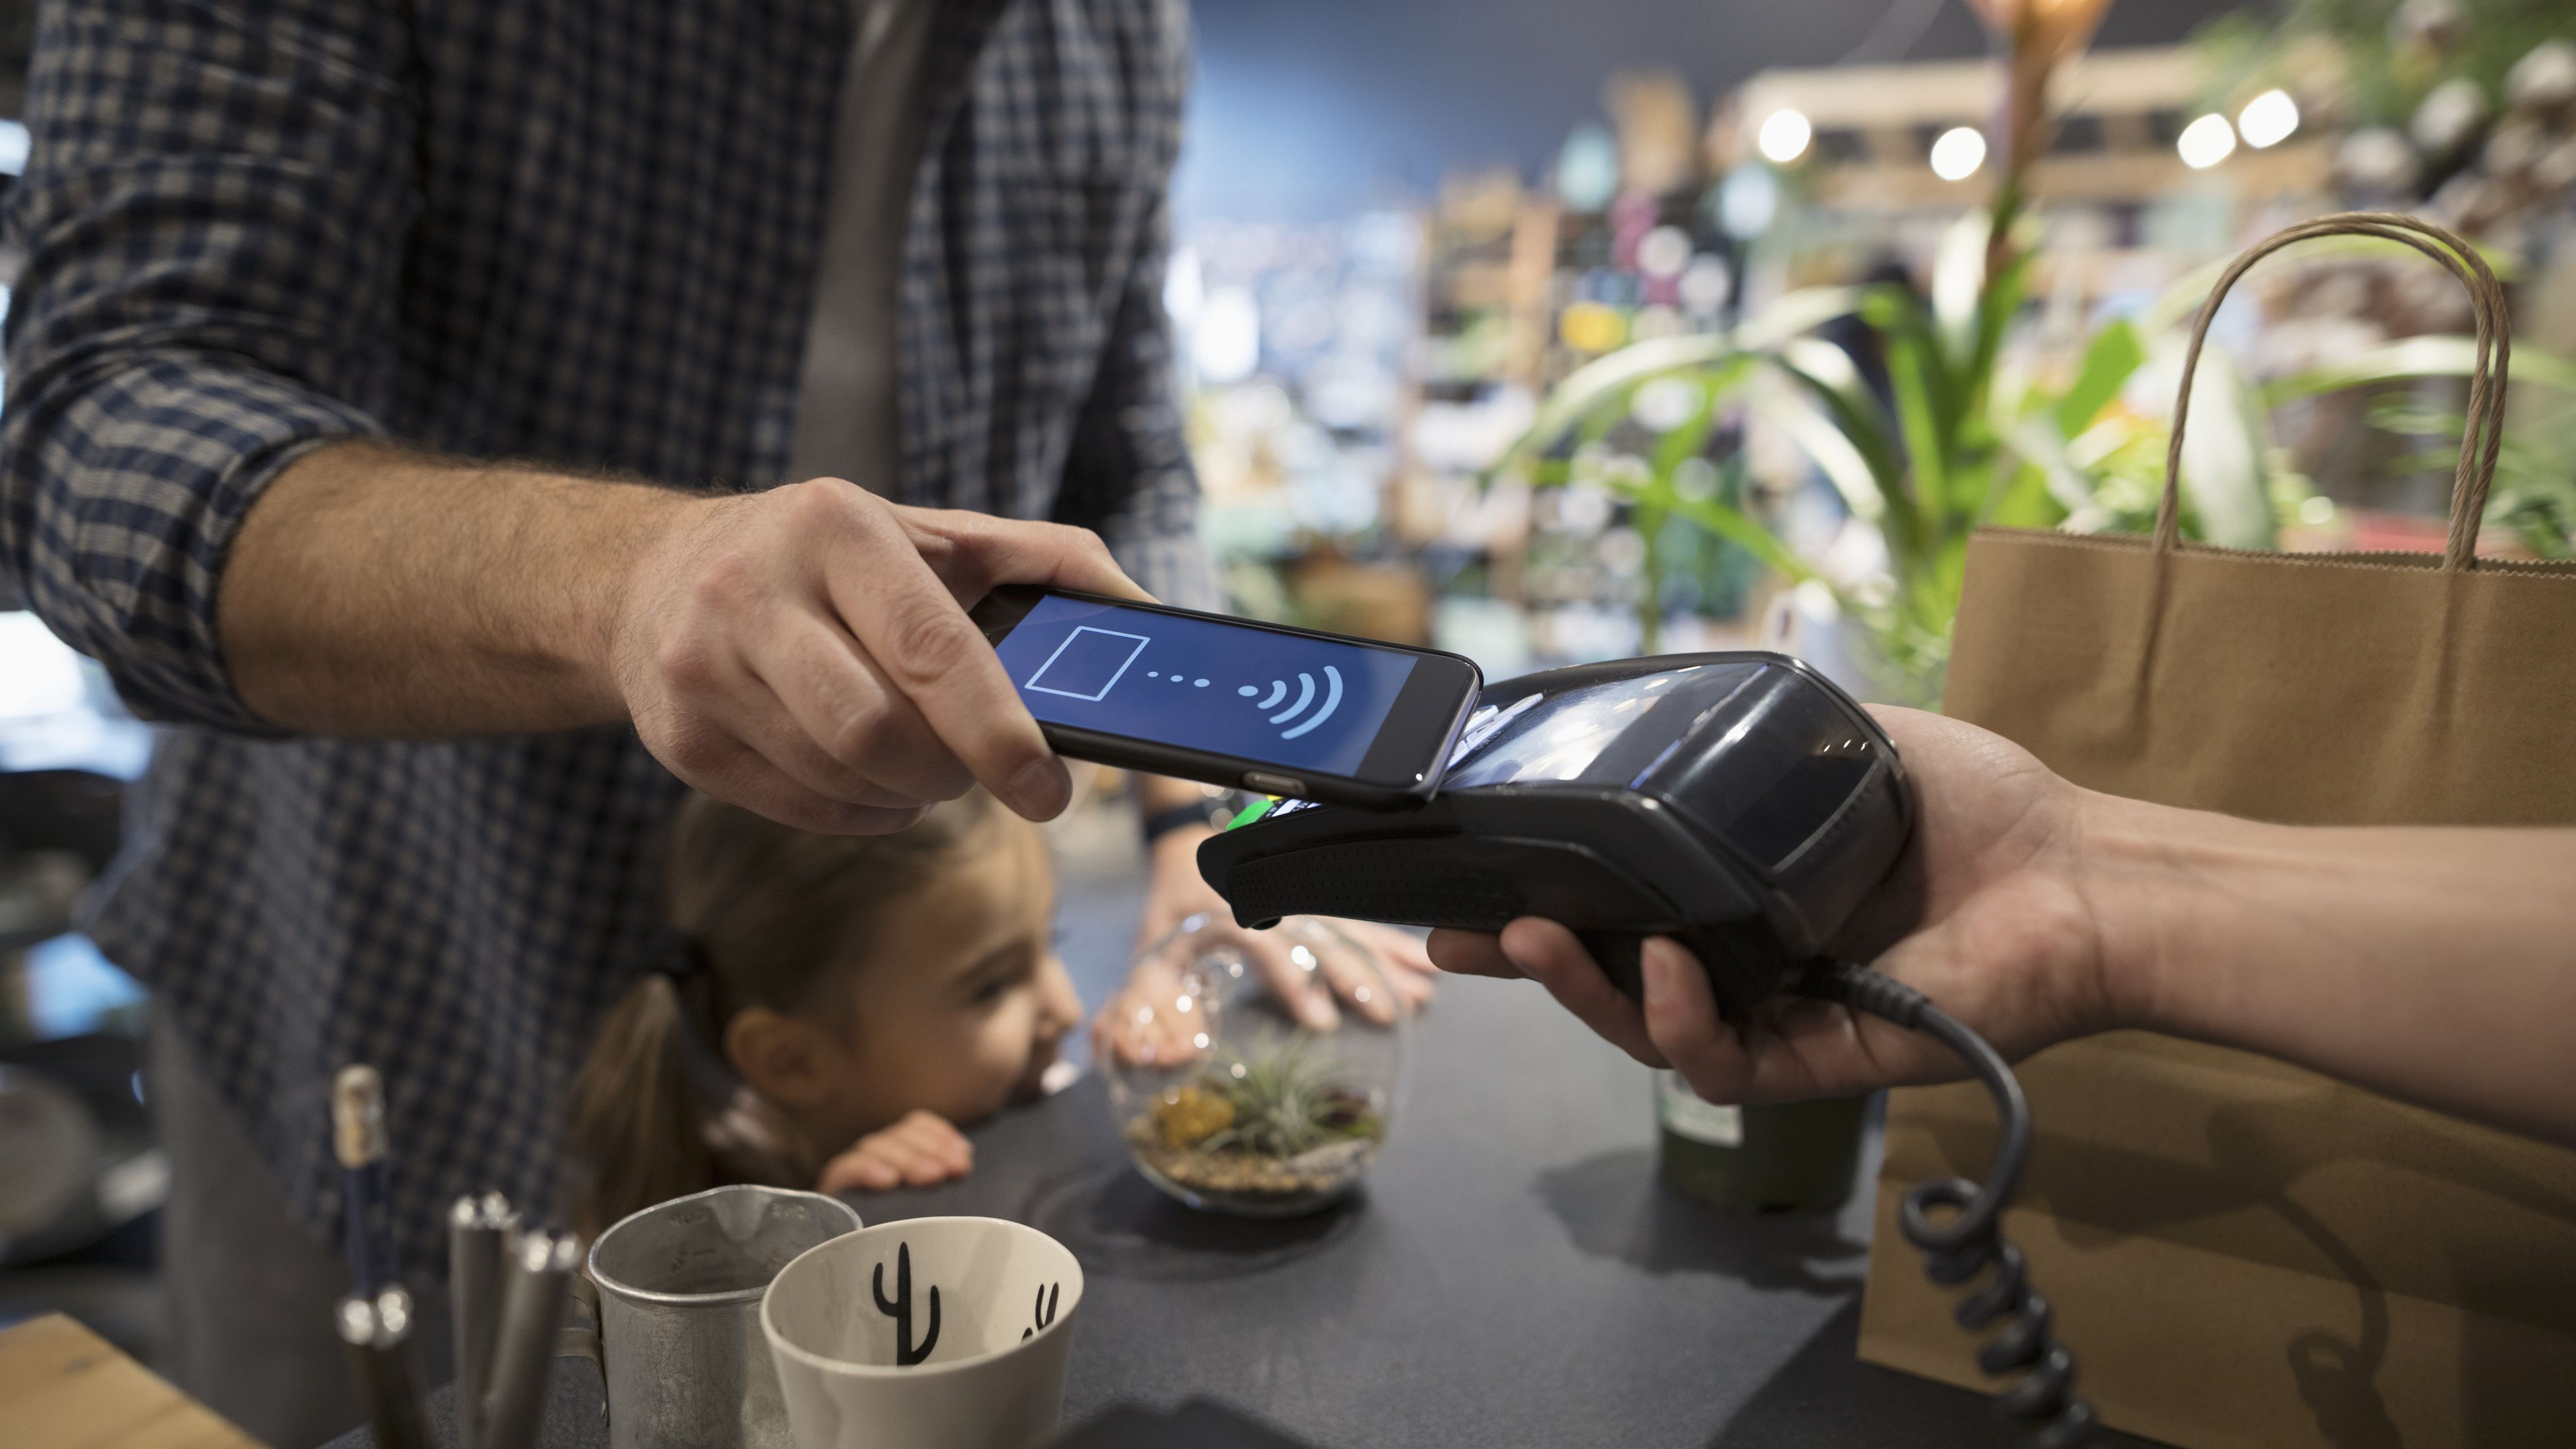 Comparison: Google Pay, Samsung Pay, and Apple Pay